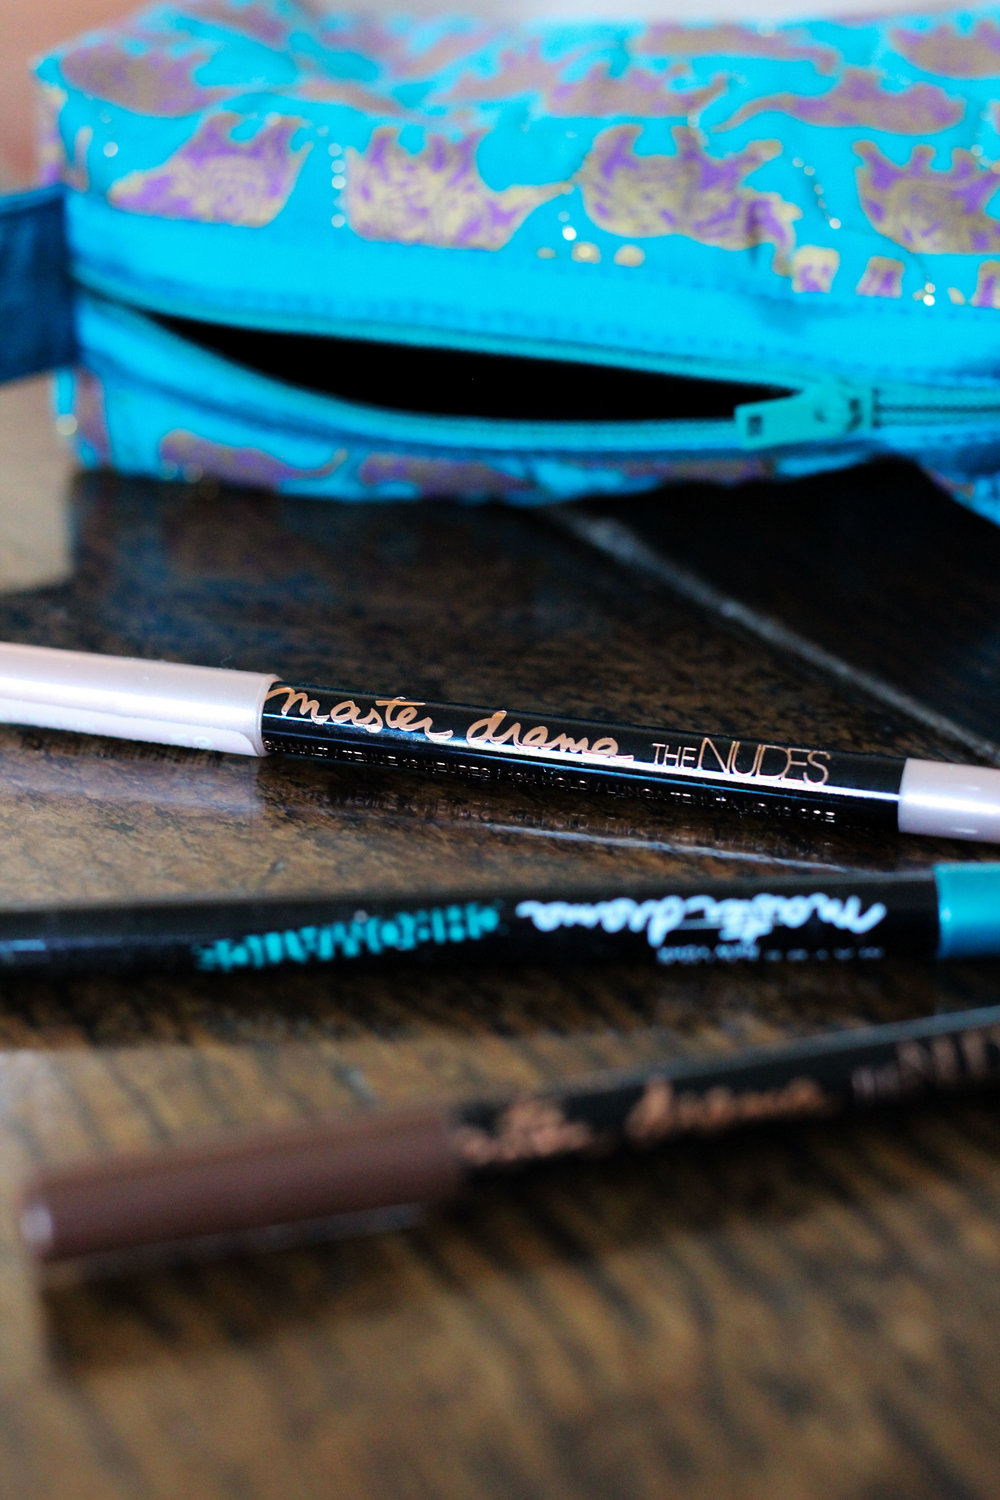 The makeup marvel in question is the Master Drama Pencil Eyeliners from Maybelline, a super soft gel-like pencil liner that goes on like a dream and stays put, no questions asked.      -